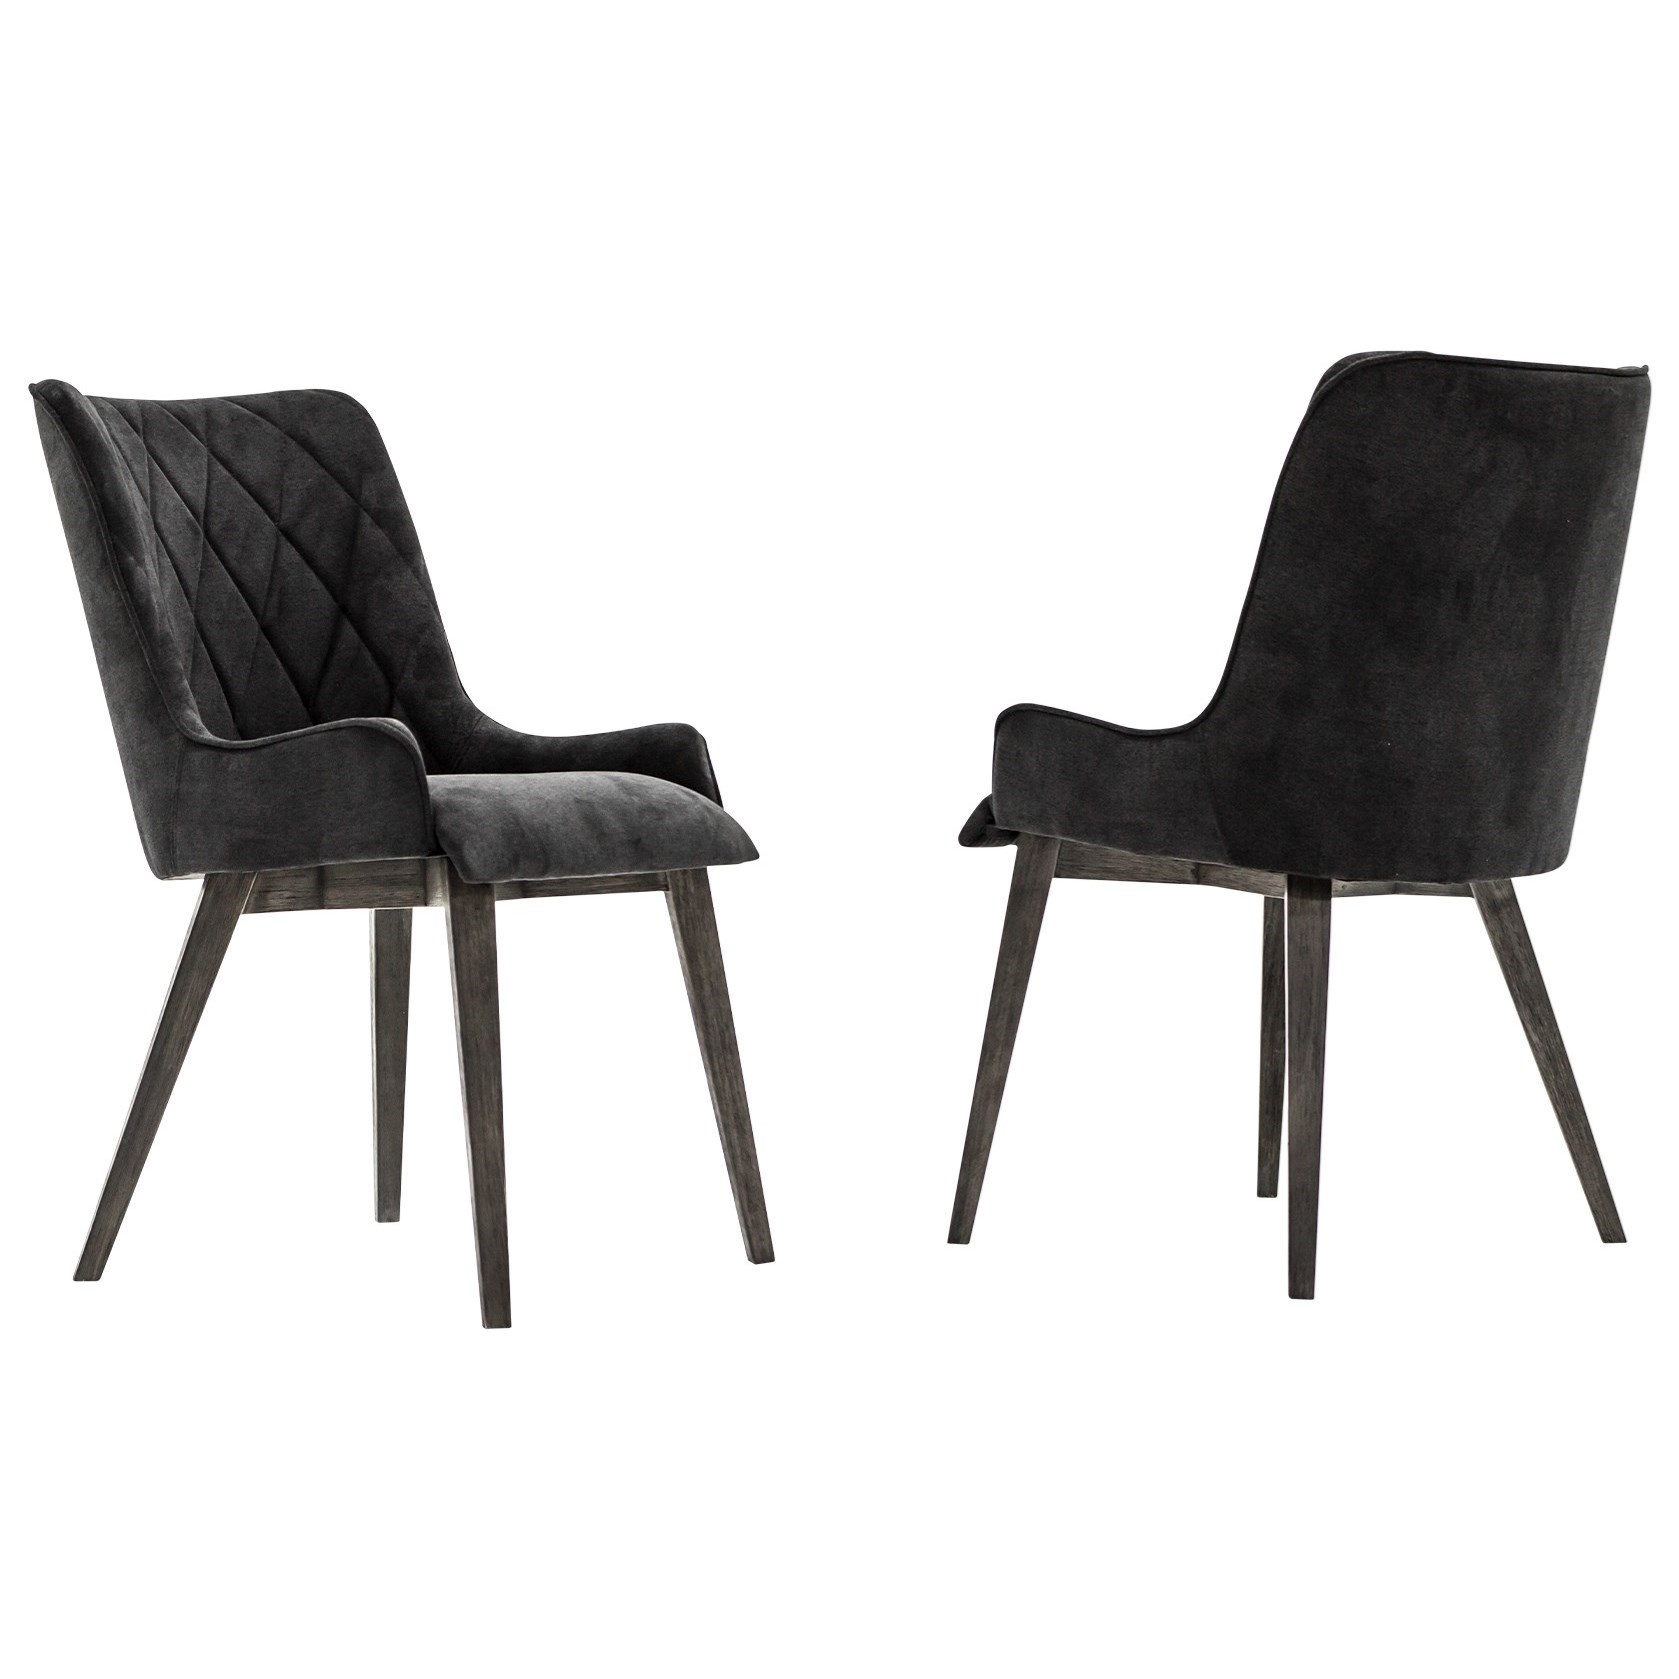 Alana Midnight Upholstered Dining Chair Set by Armen Living at Fisher Home Furnishings